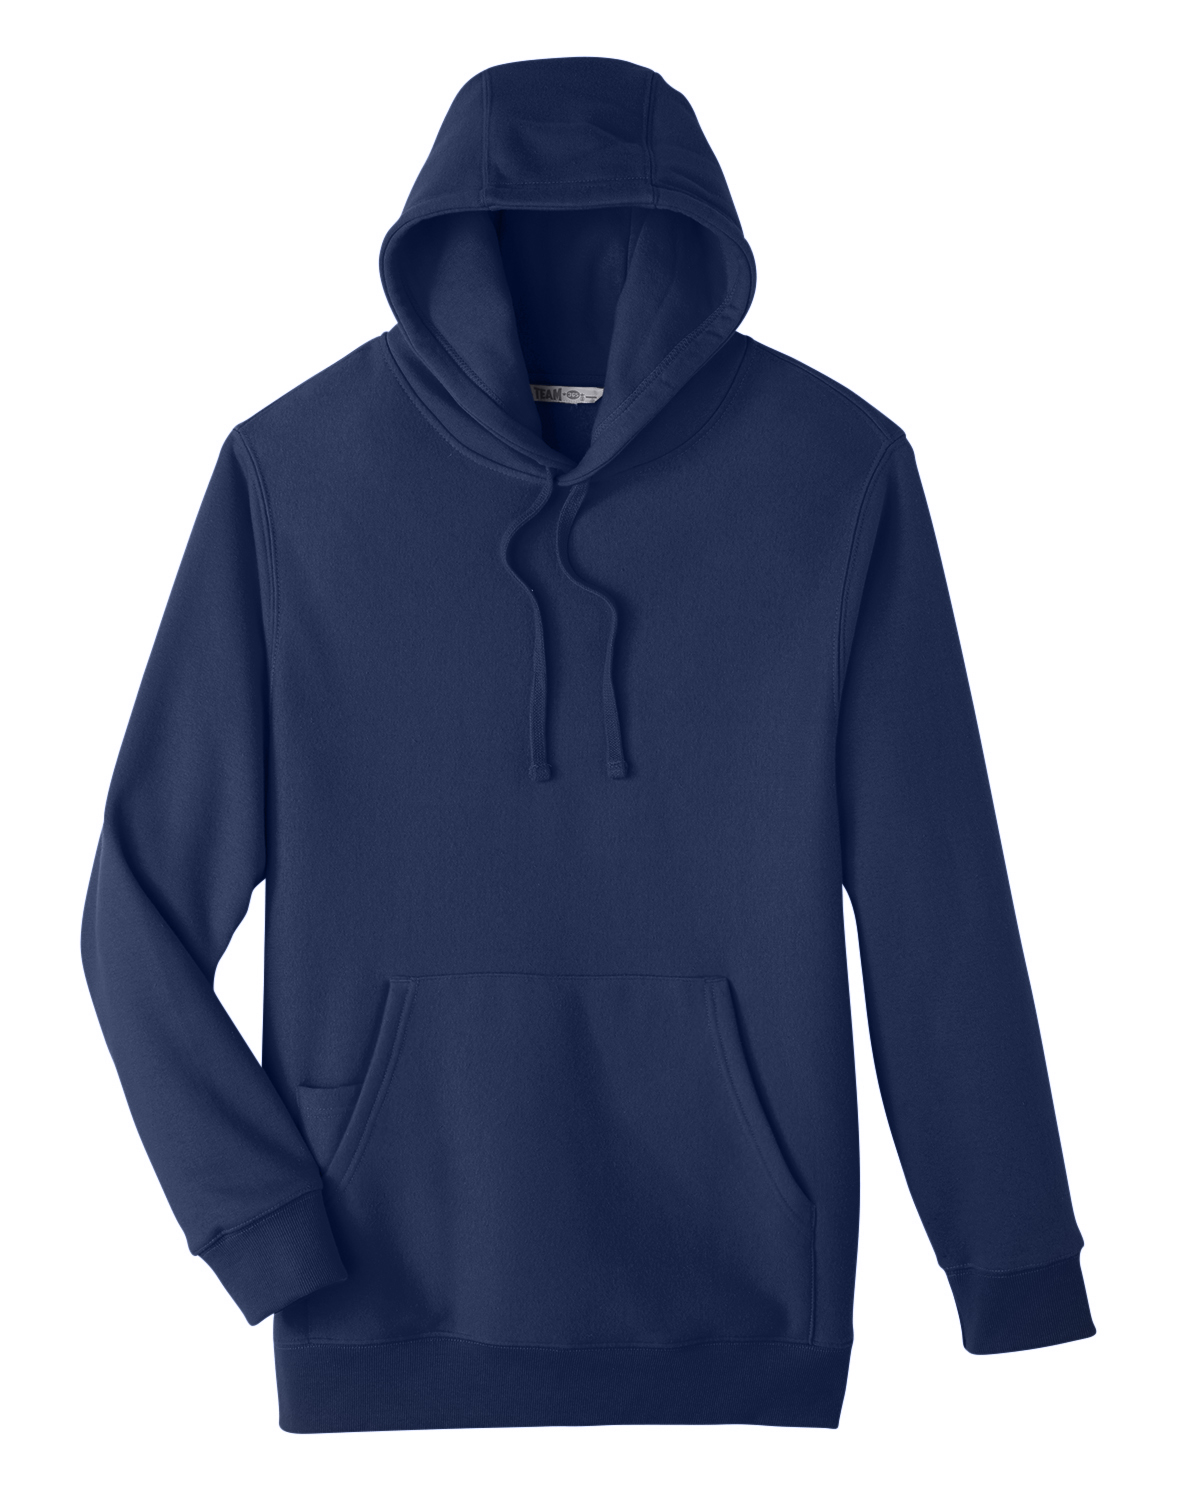 Picture of Team 365 Adult Zone HydroSport™ Heavyweight Pullover Hooded Sweatshirt